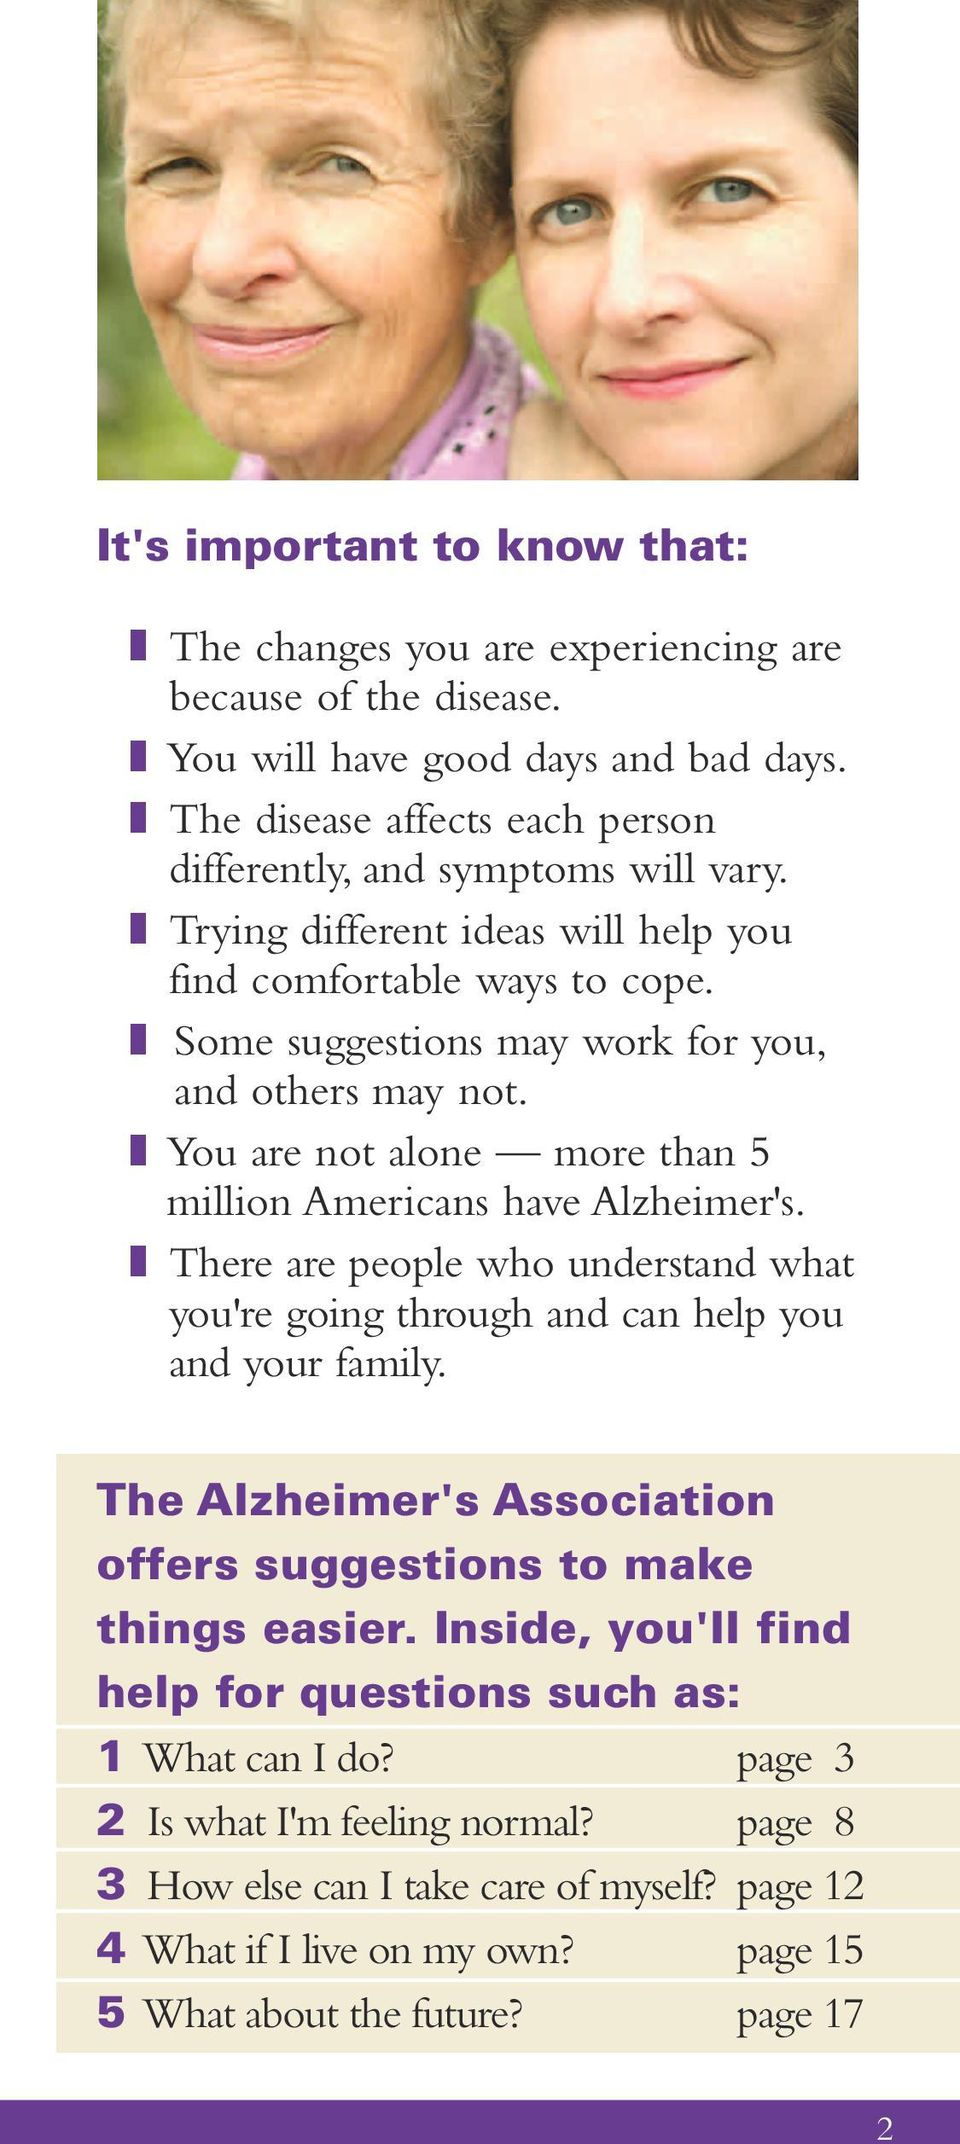 z You are not alone more than 5 million Americans have Alzheimer's. z There are people who understand what you're going through and can help you and your family.